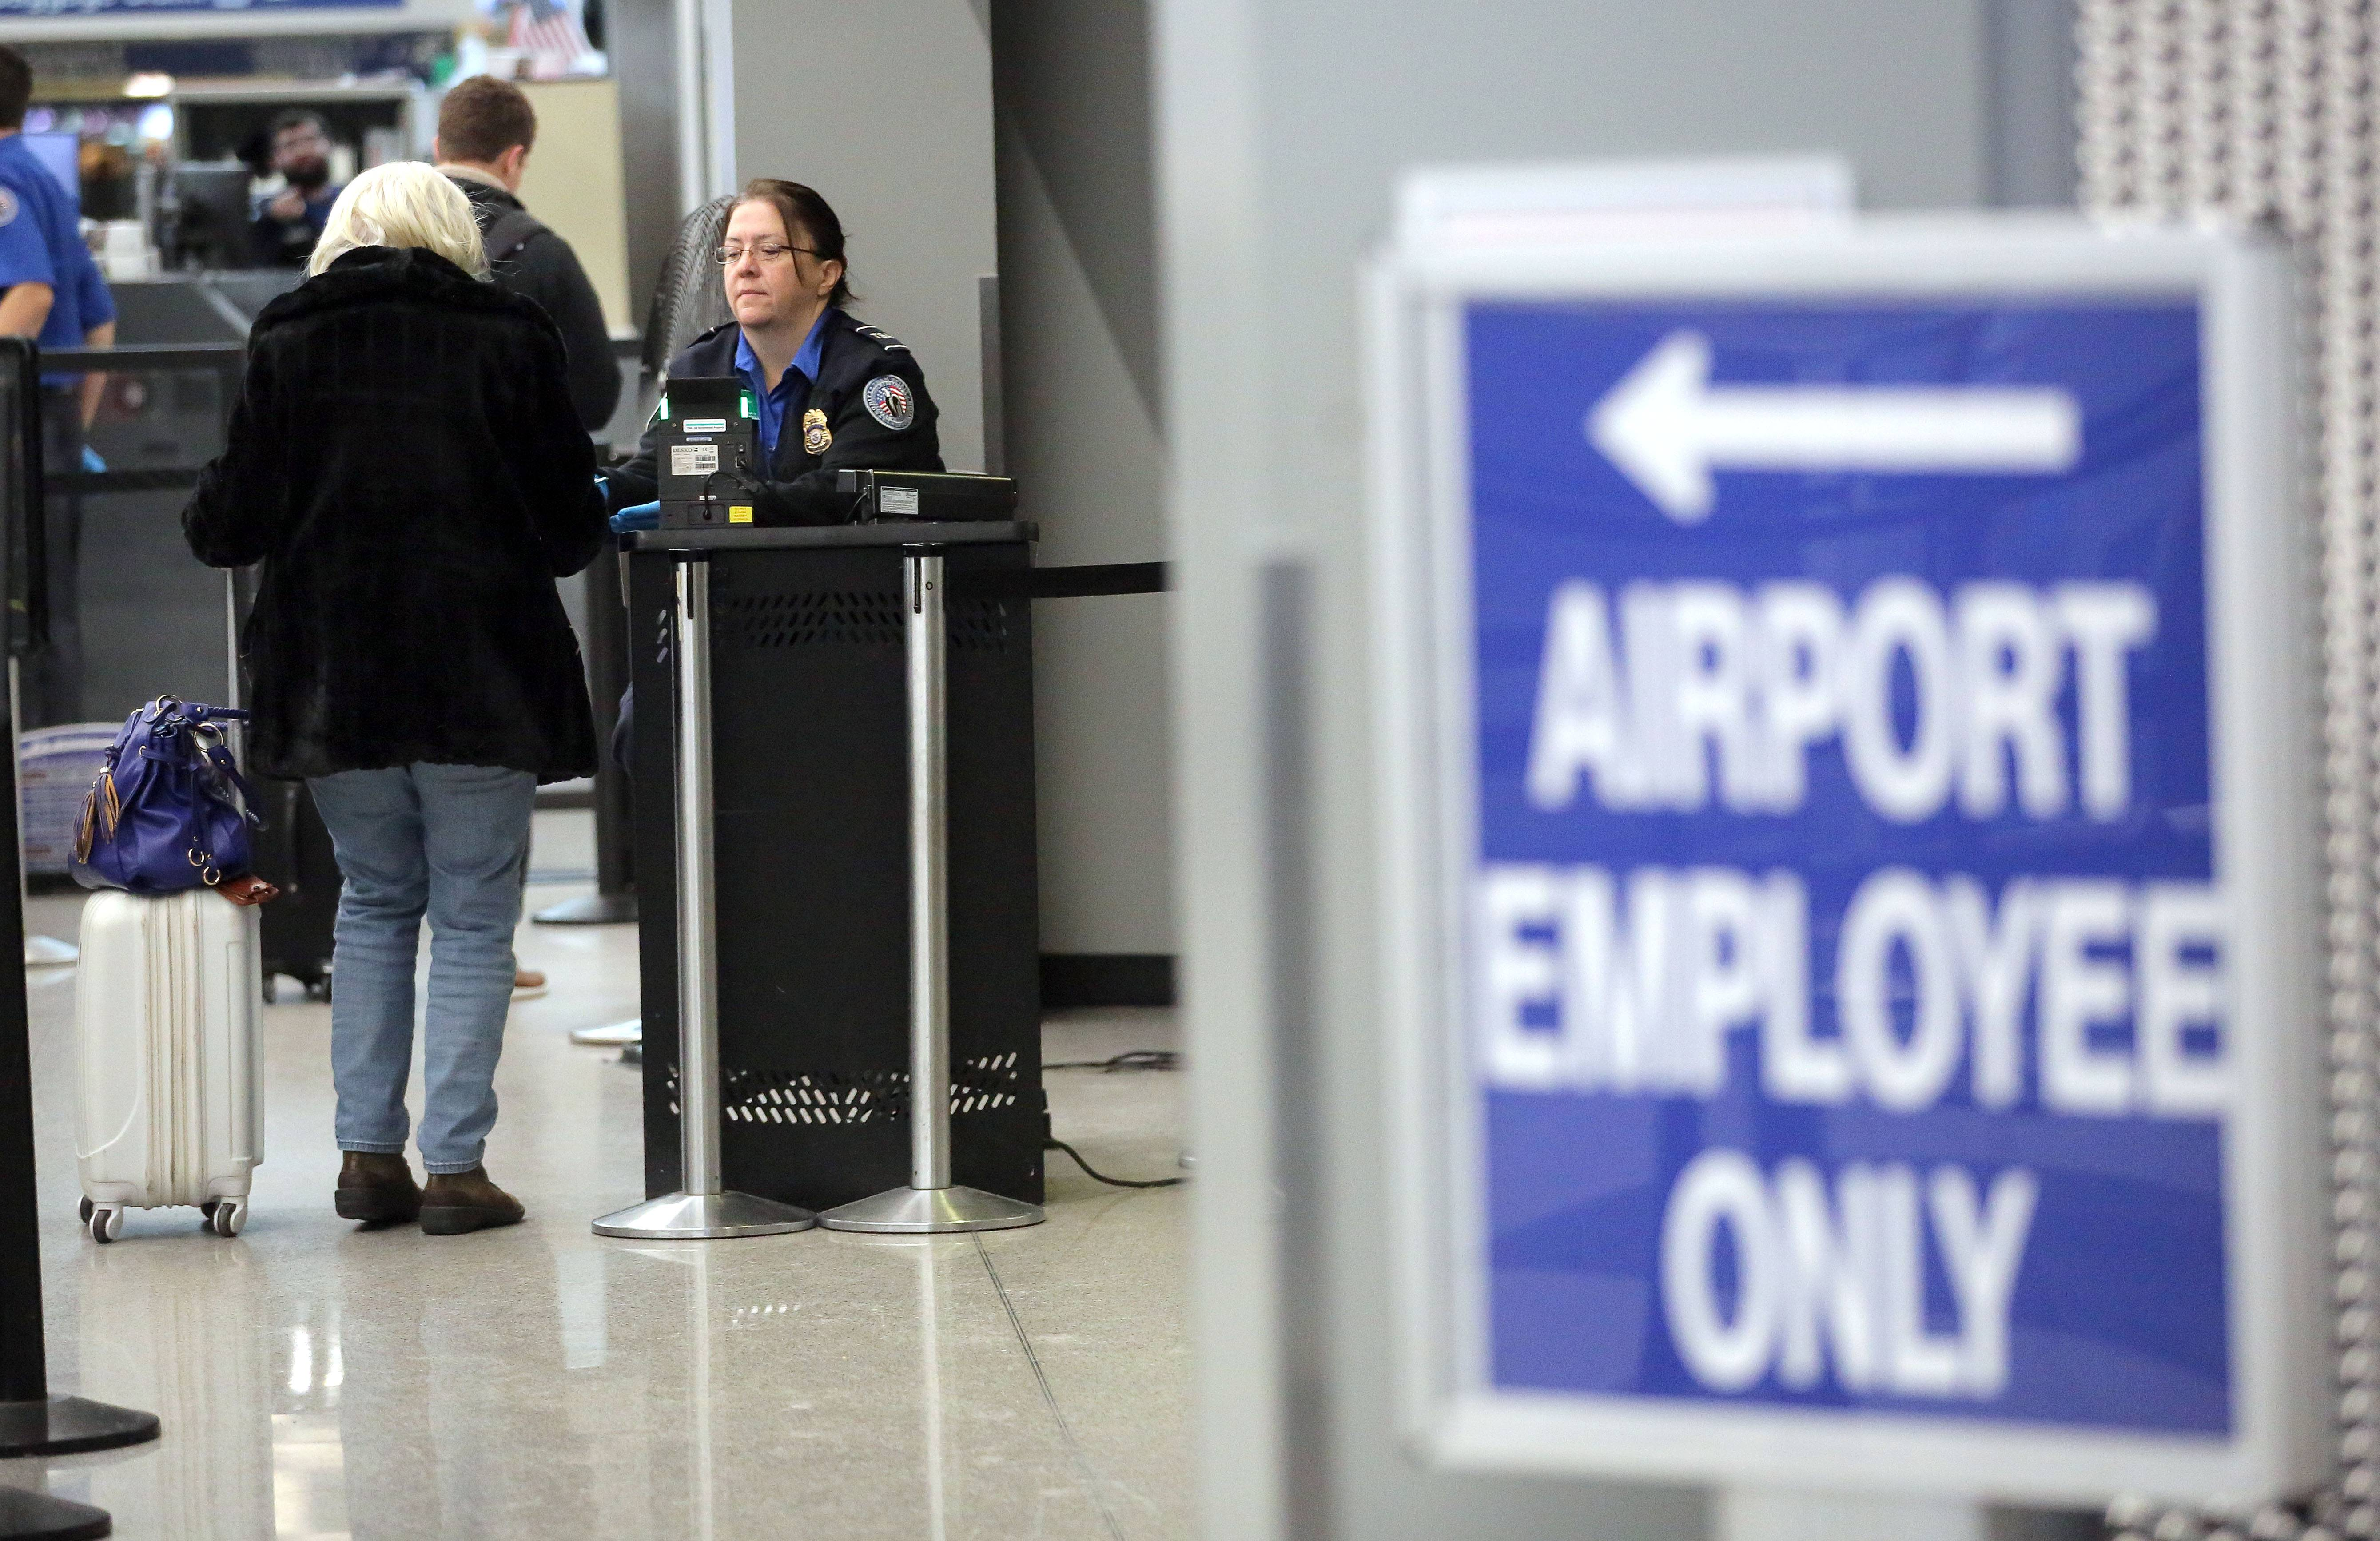 An unpaid TSA agent helps a traveler at O'Hare International Airport in Chicago last week.